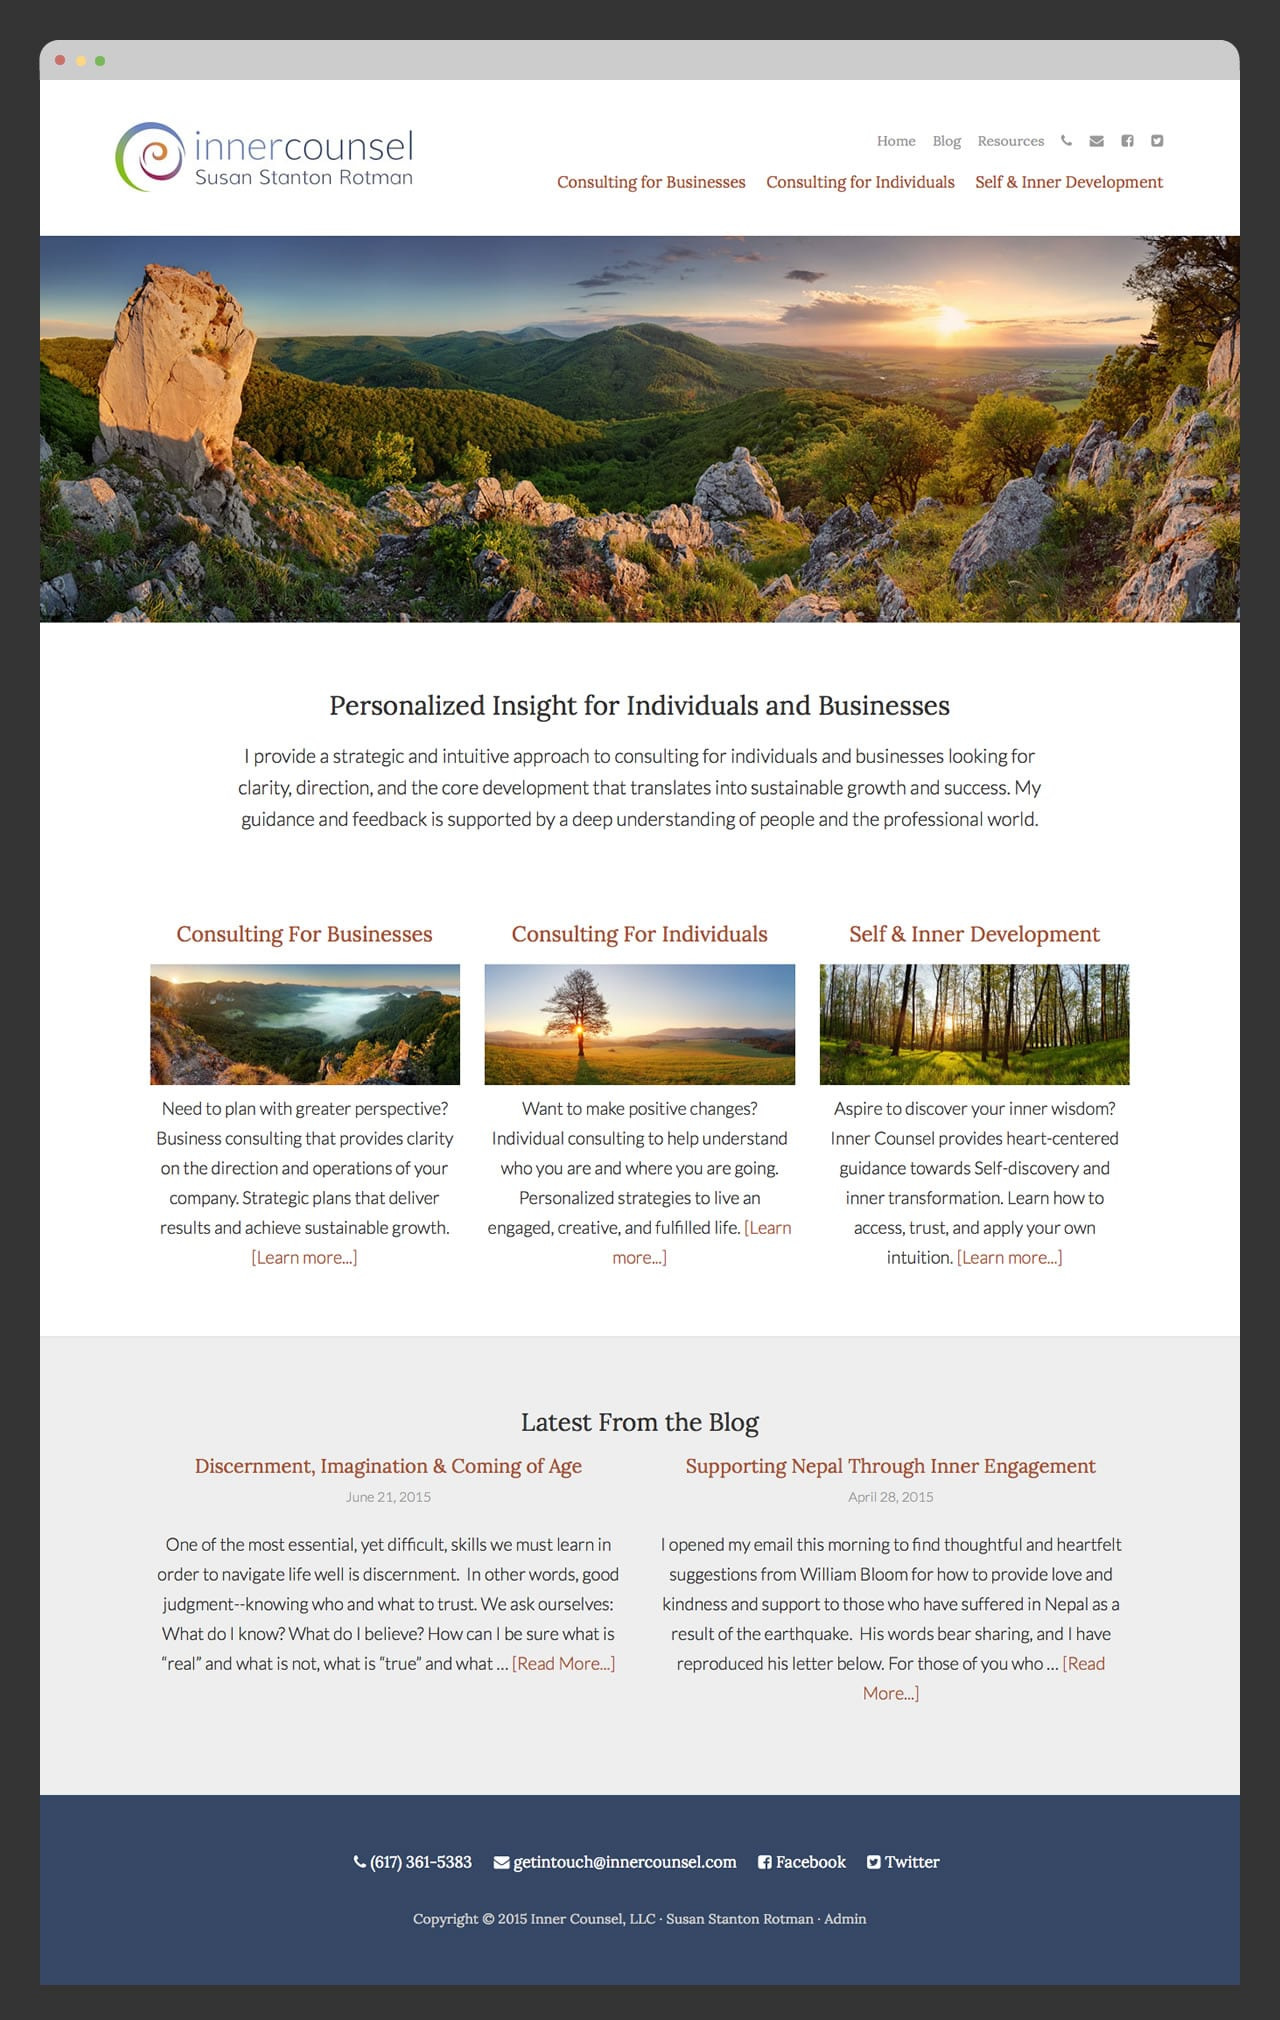 innercounsel-websitedesign